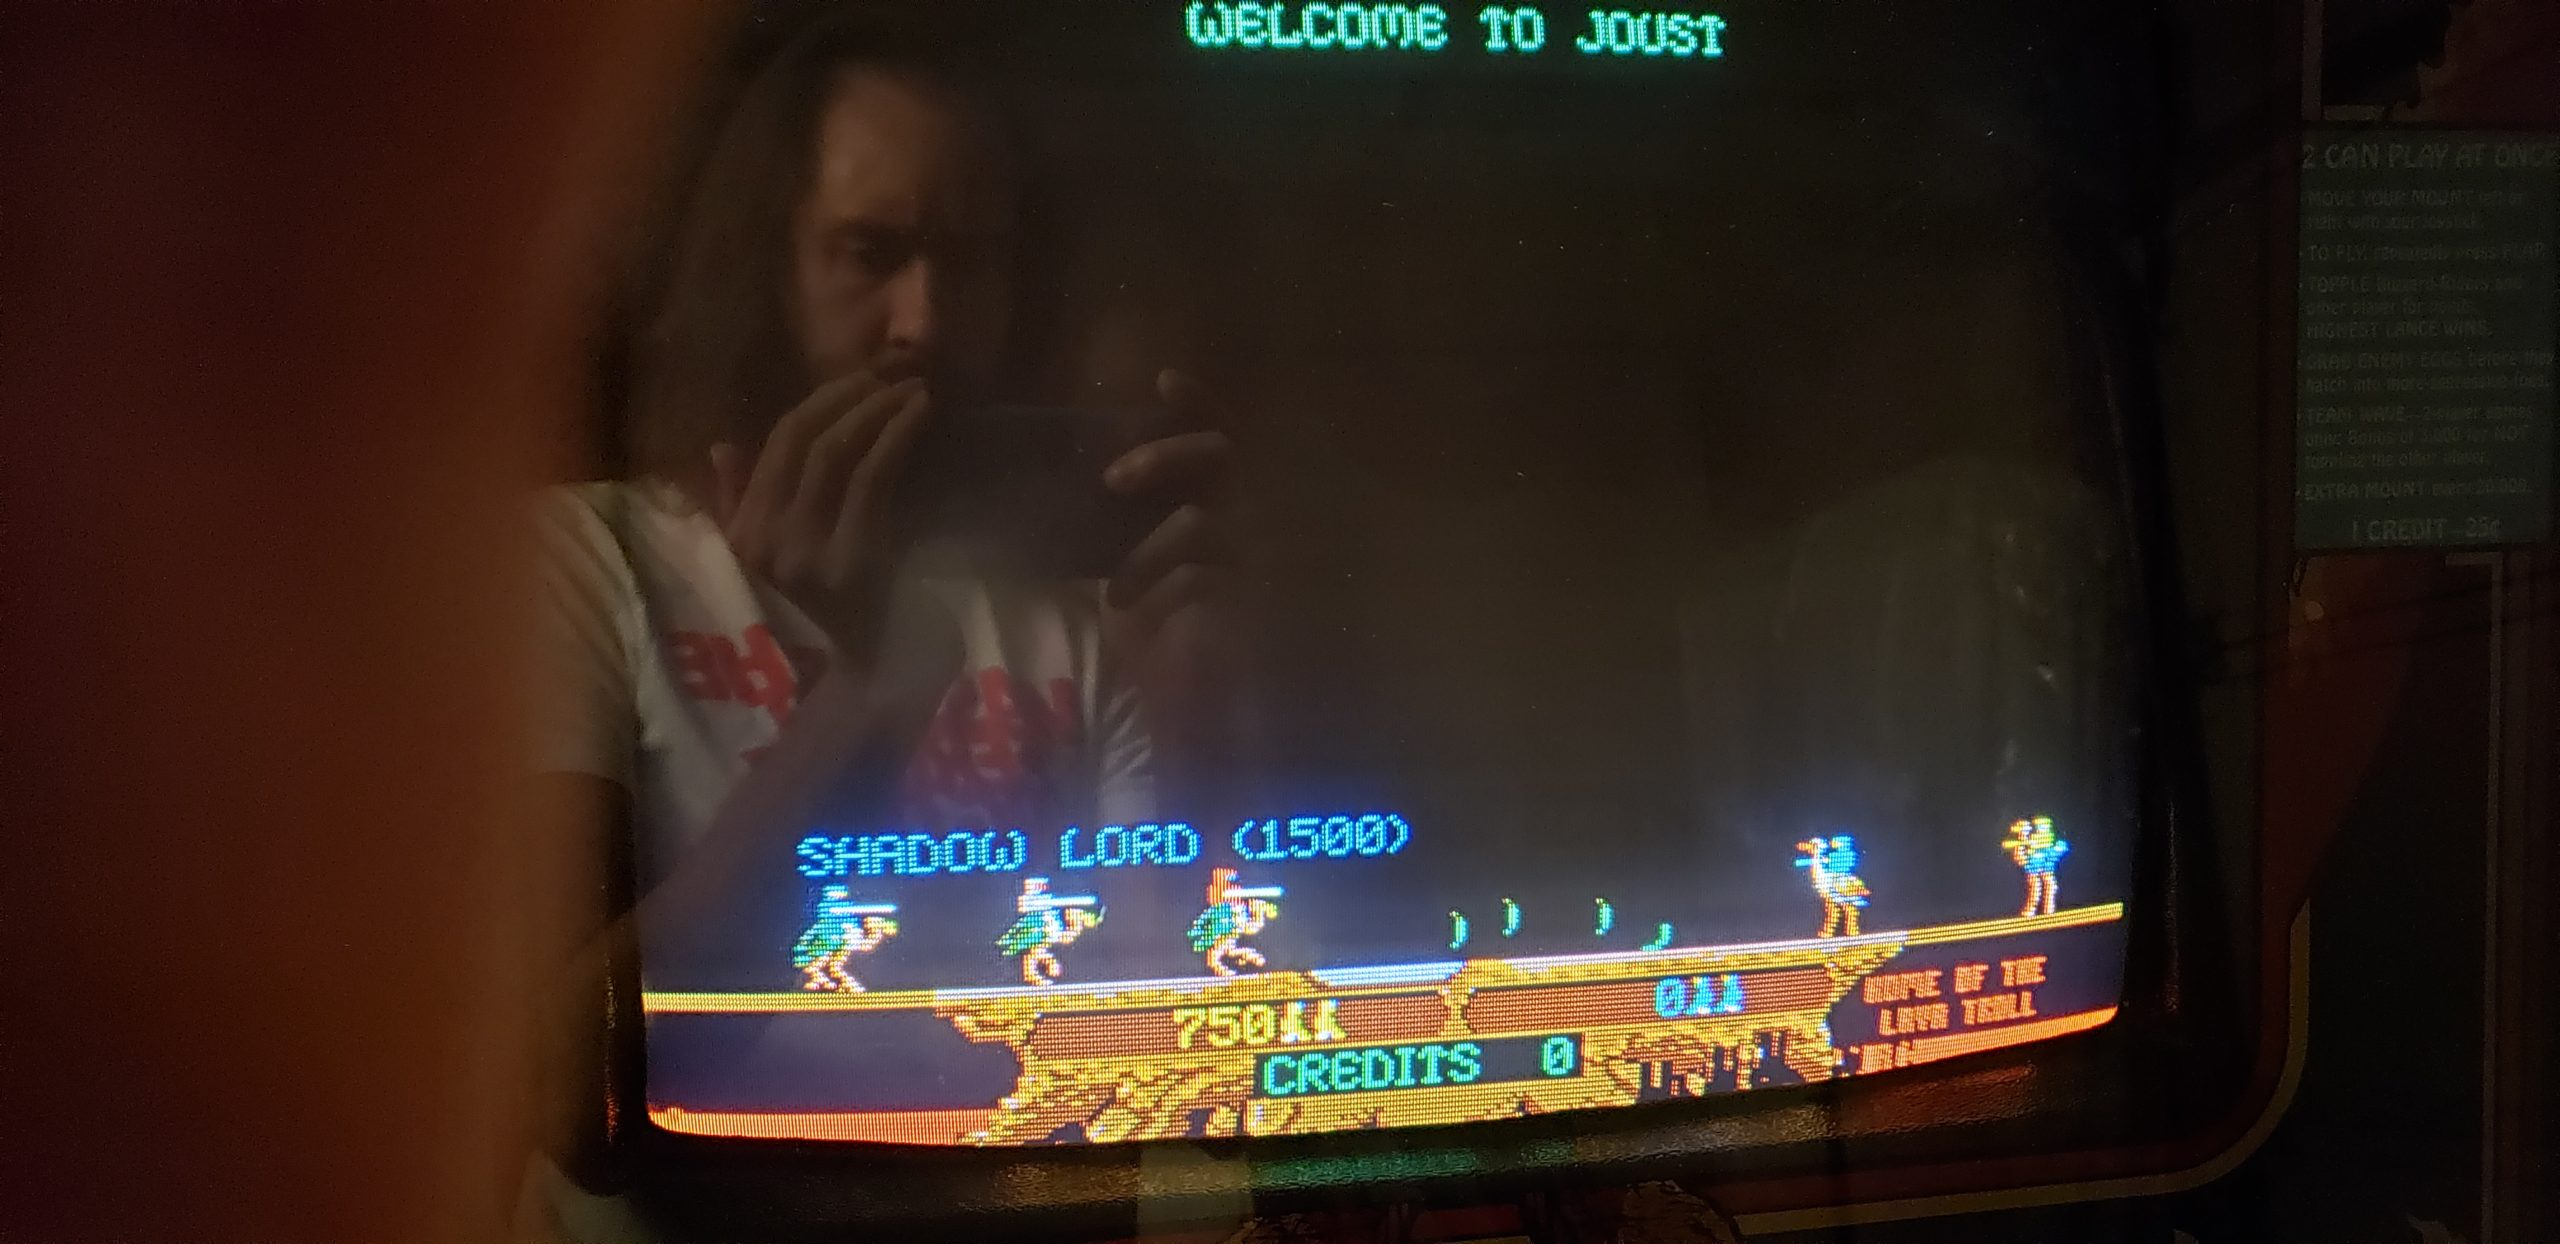 Joust screen with graphical glitch